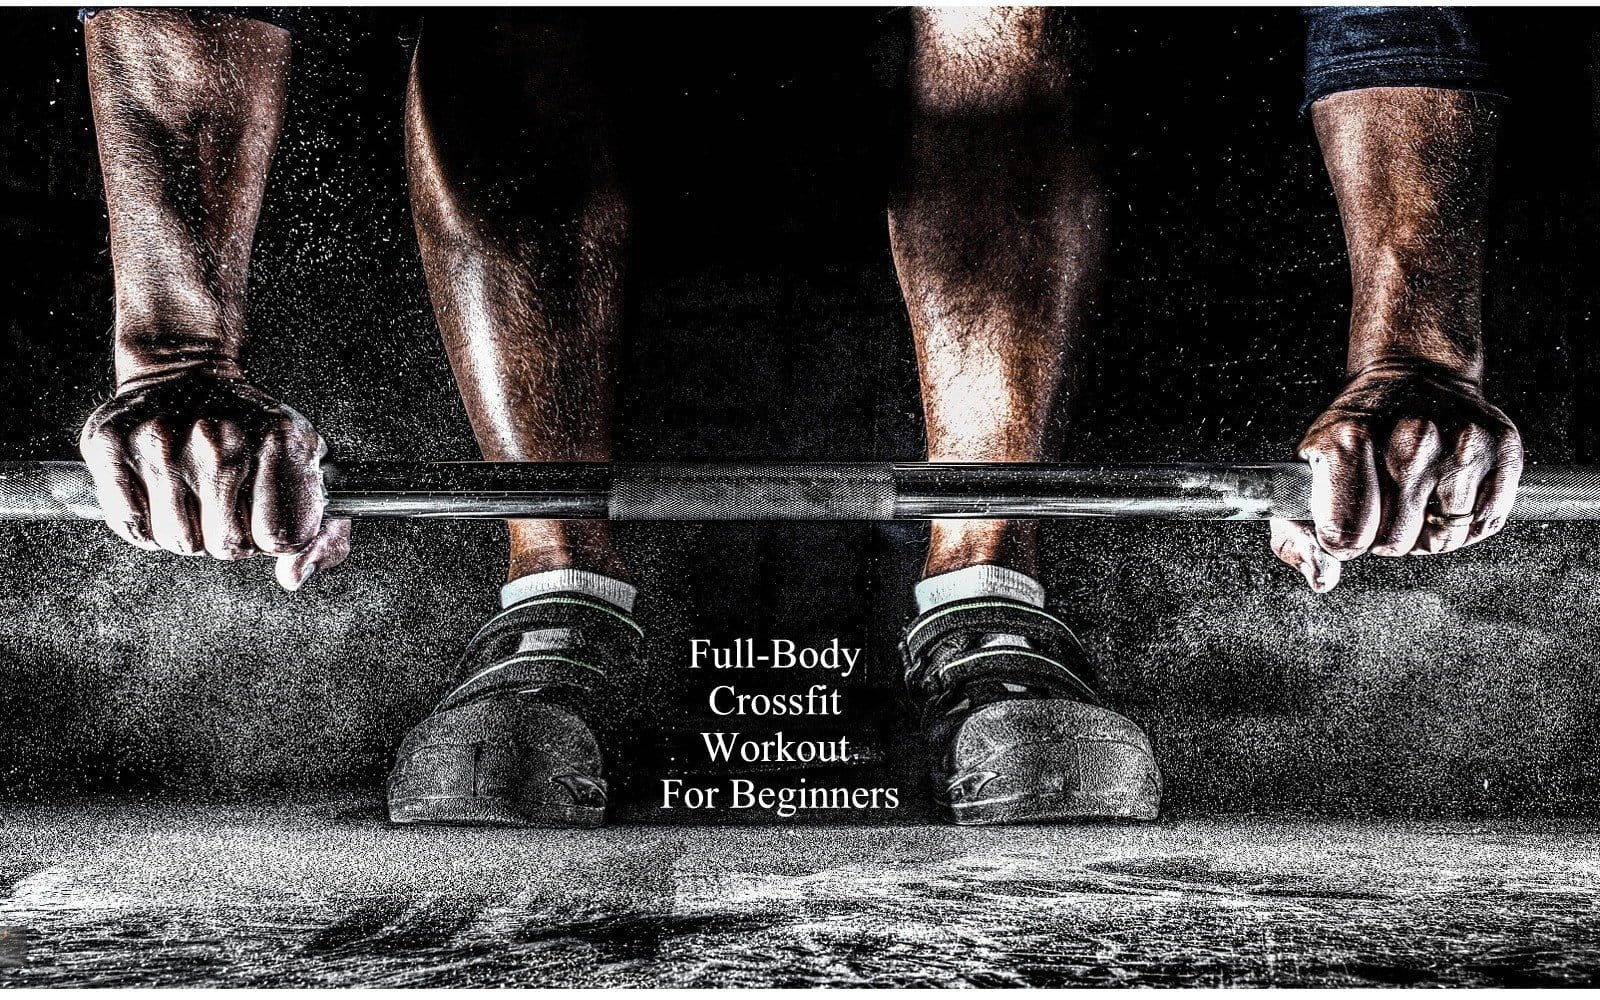 Full-Body Crossfit Workout For Beginners